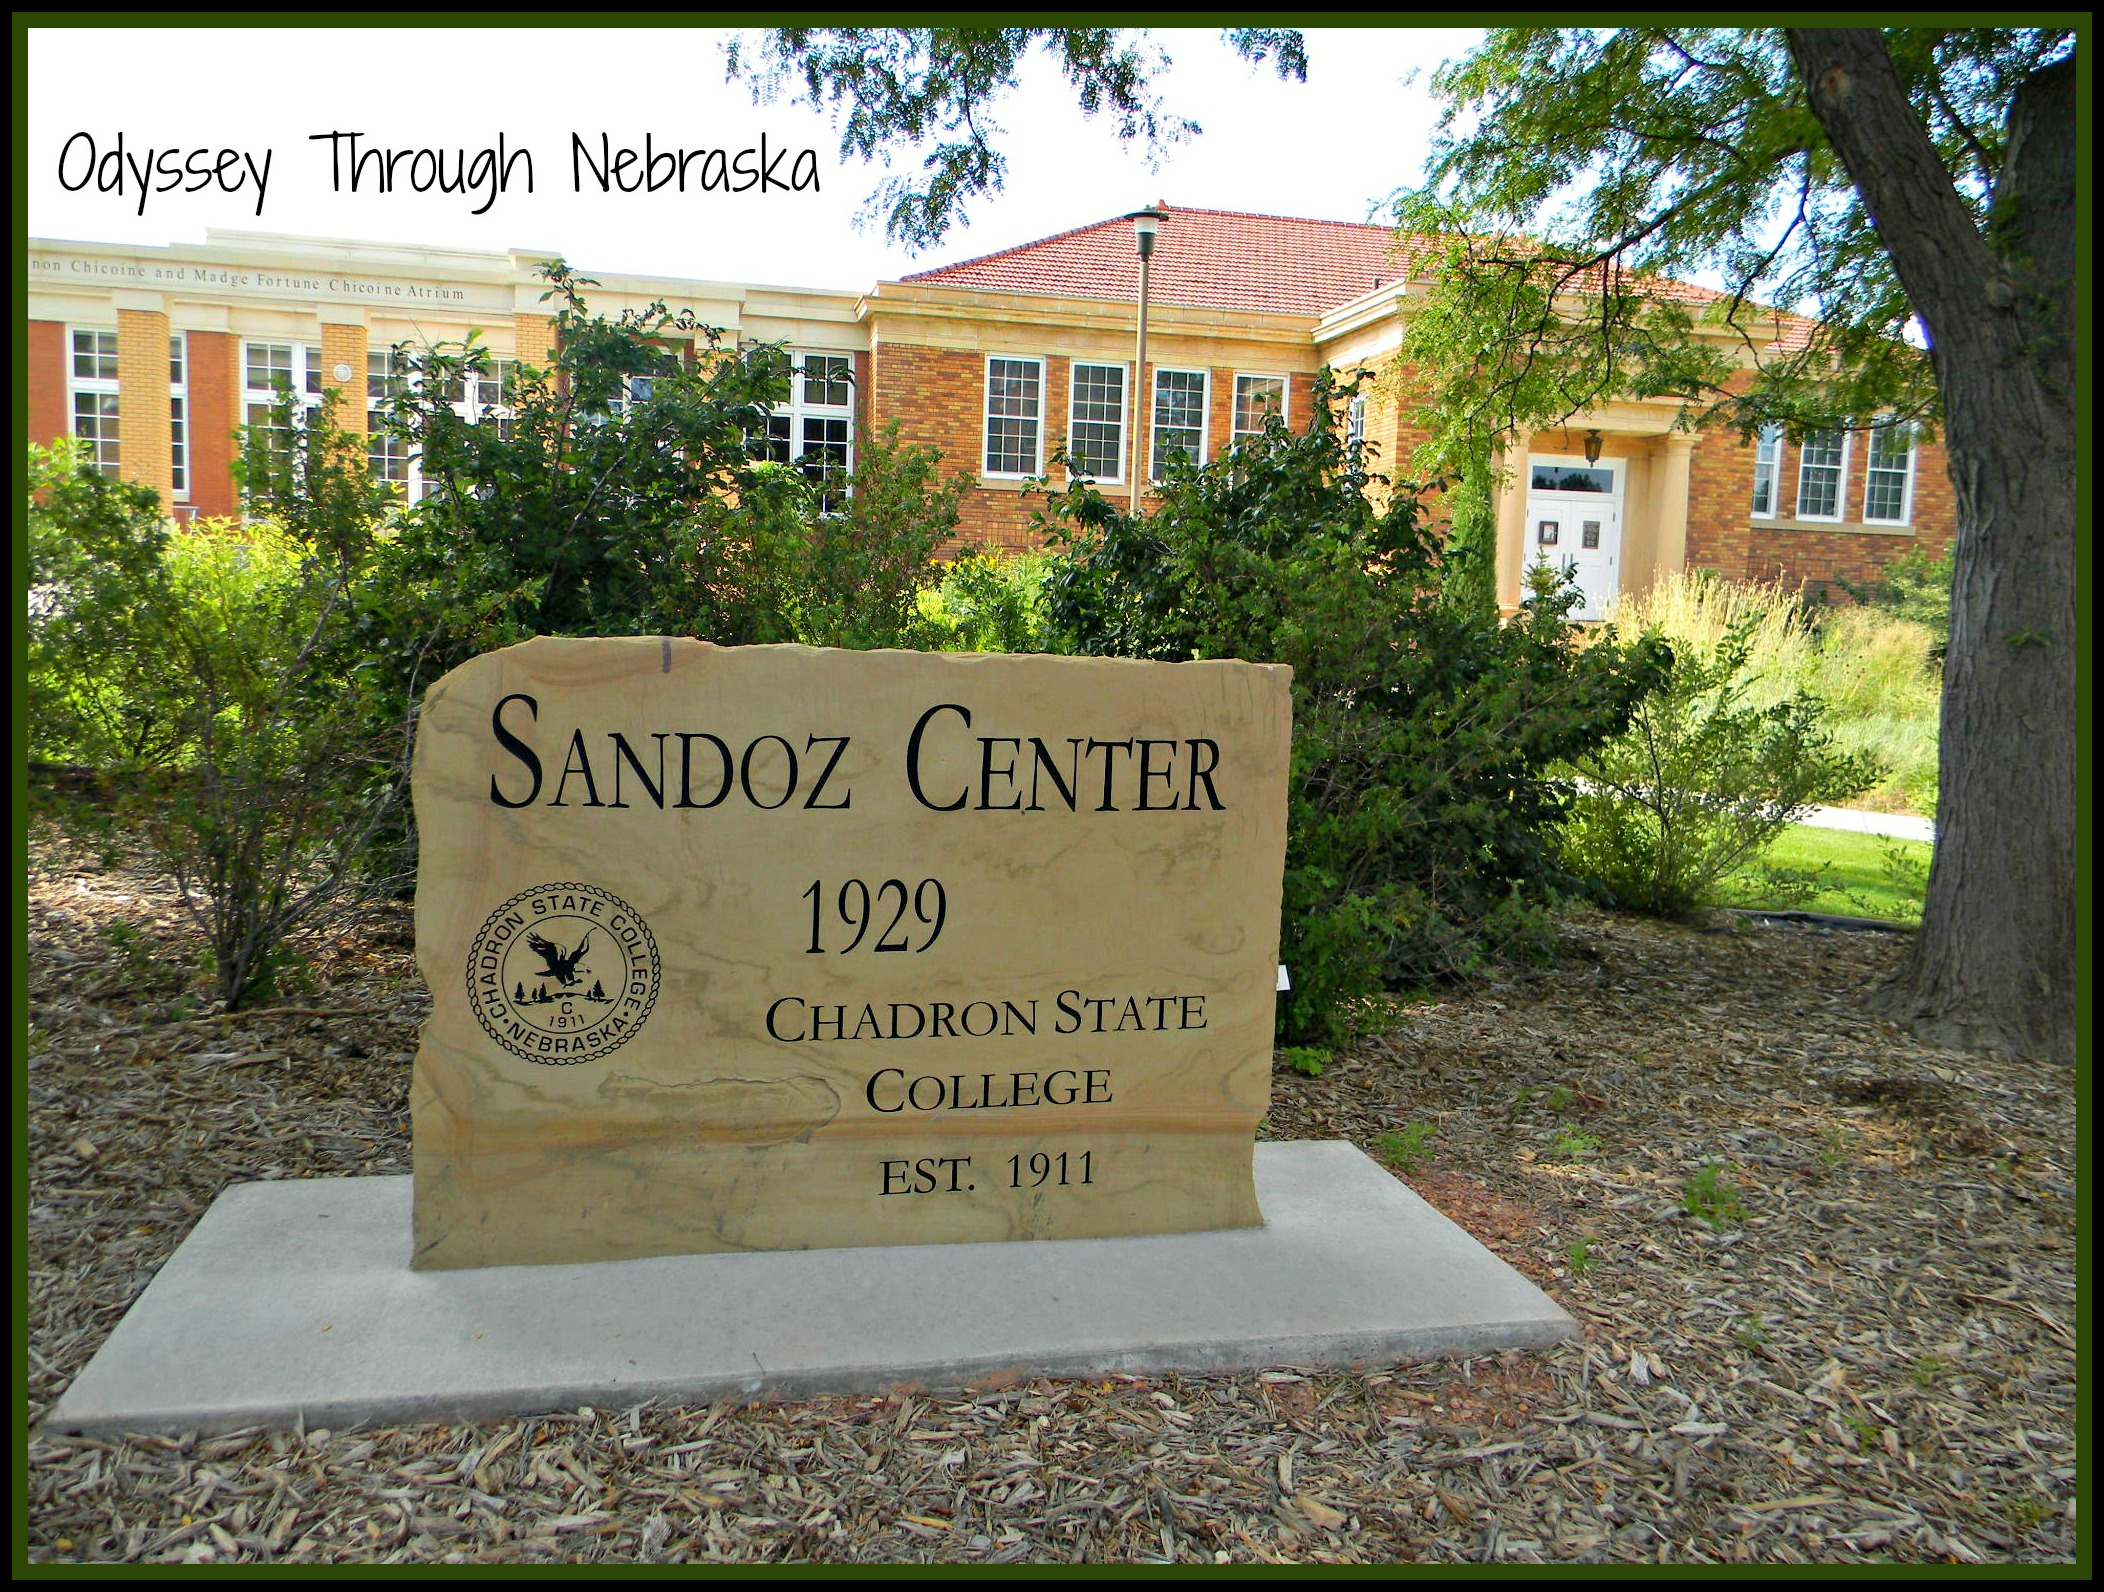 Celebrating the work of Mari Sandoz in Northwest Nebraska